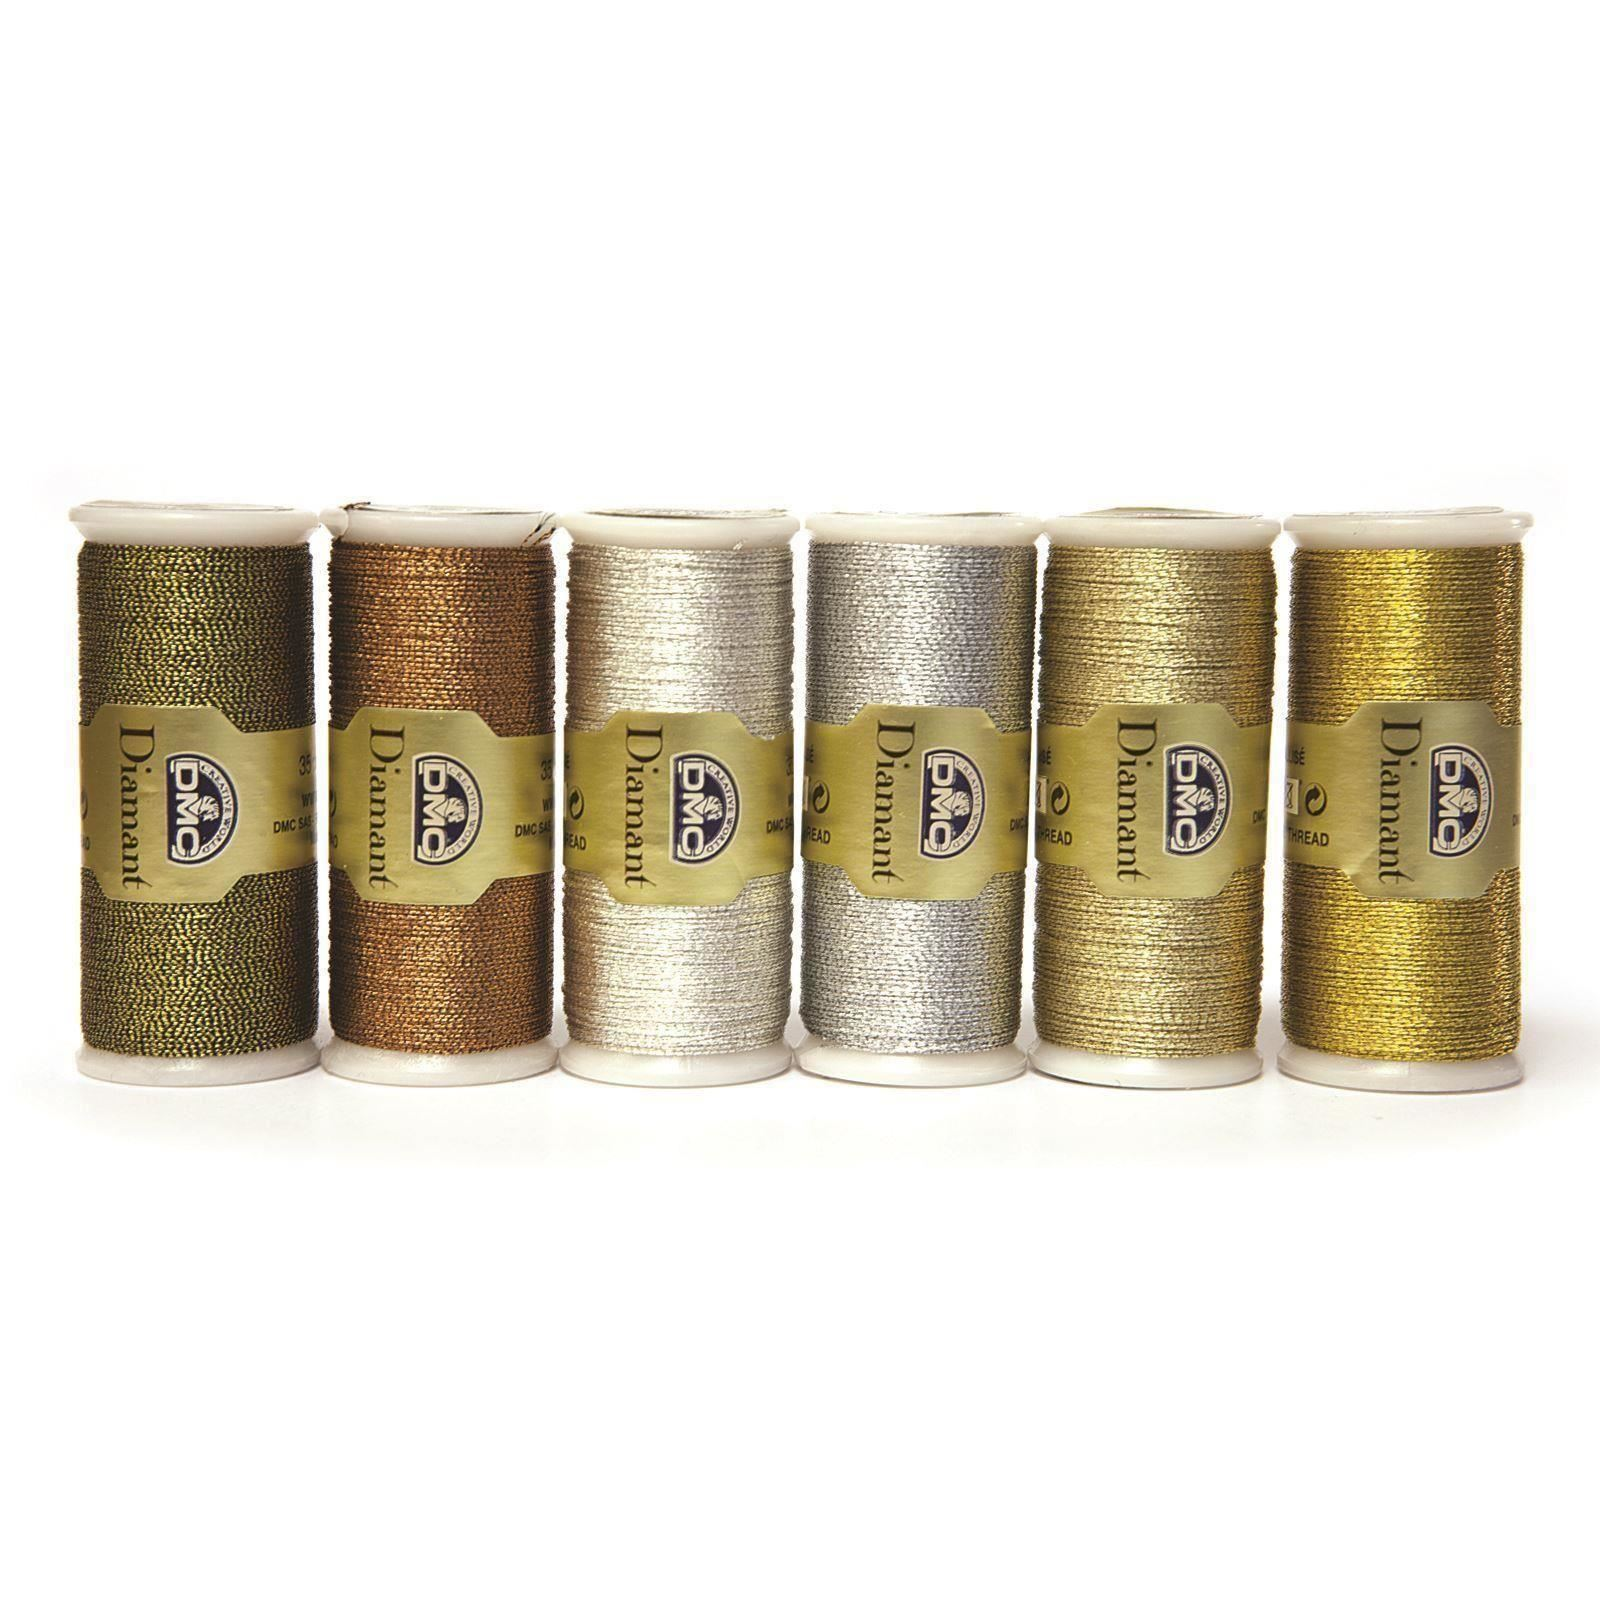 DMC-Diamant-Metallic-Embroidery-Thread-35m-Spool-Cross-Stitch thumbnail 11